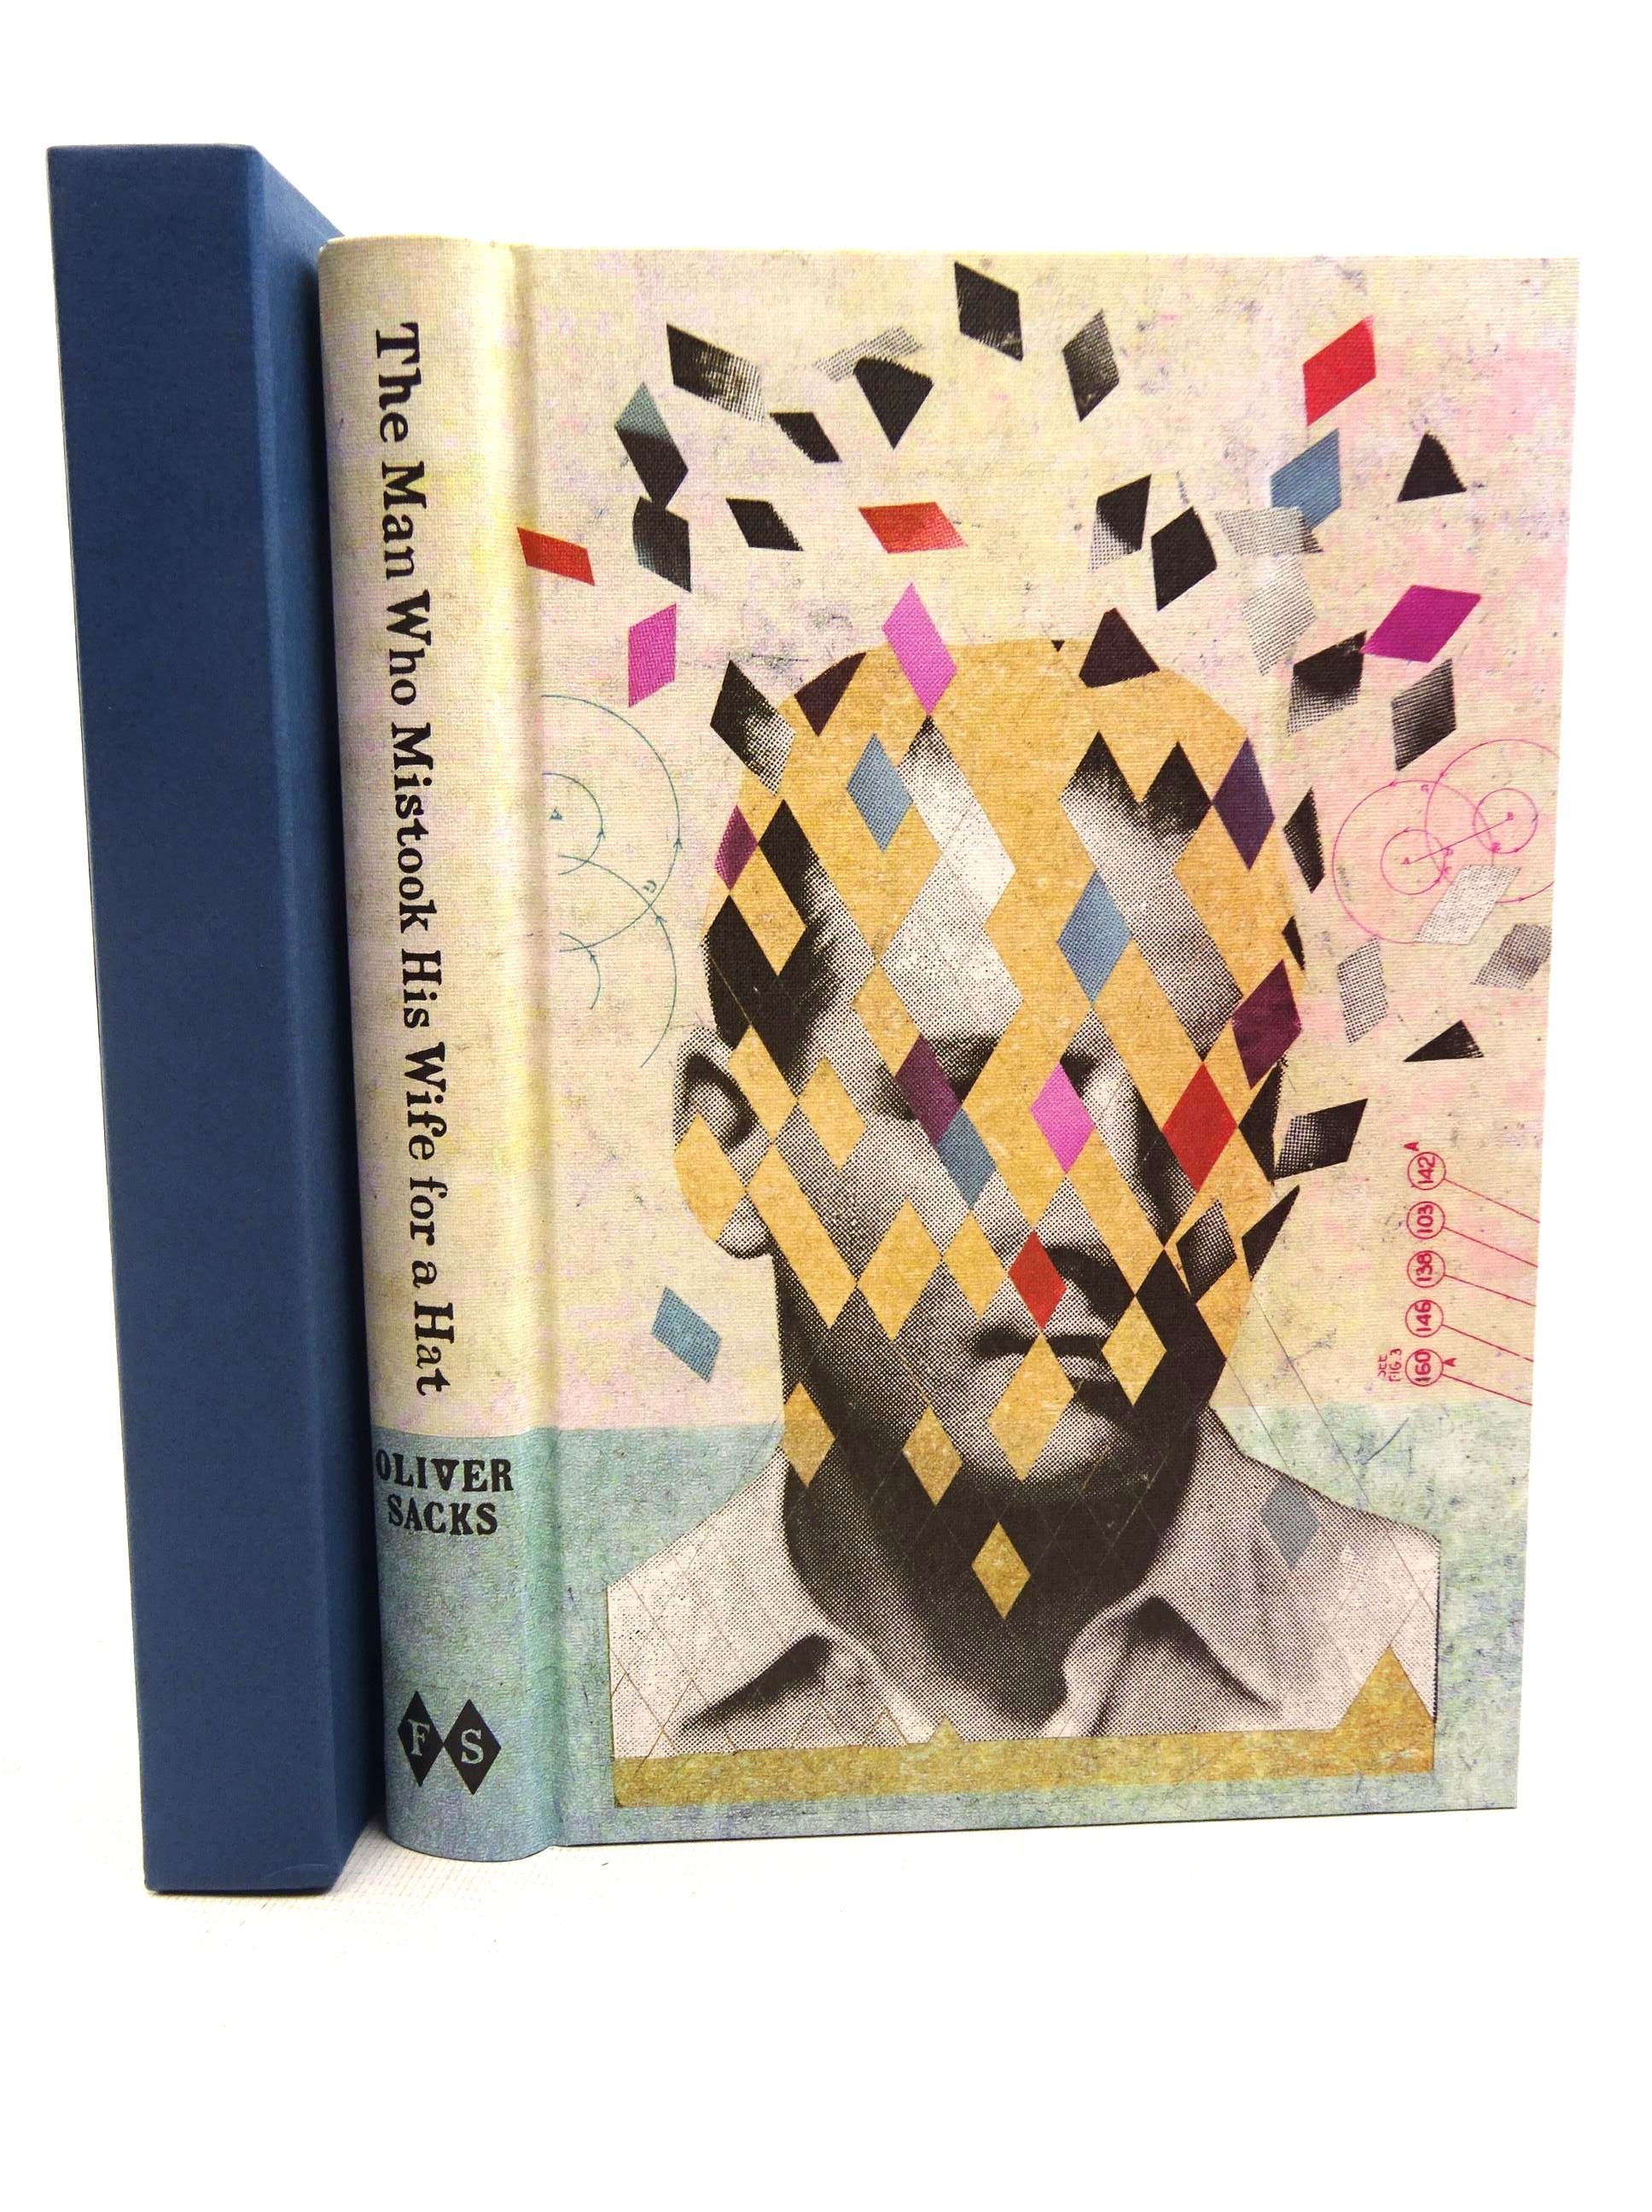 Photo of THE MAN WHO MISTOOK HIS WIFE FOR A HAT written by Sacks, Oliver illustrated by O'Neill, Martin published by Folio Society (STOCK CODE: 1317627)  for sale by Stella & Rose's Books